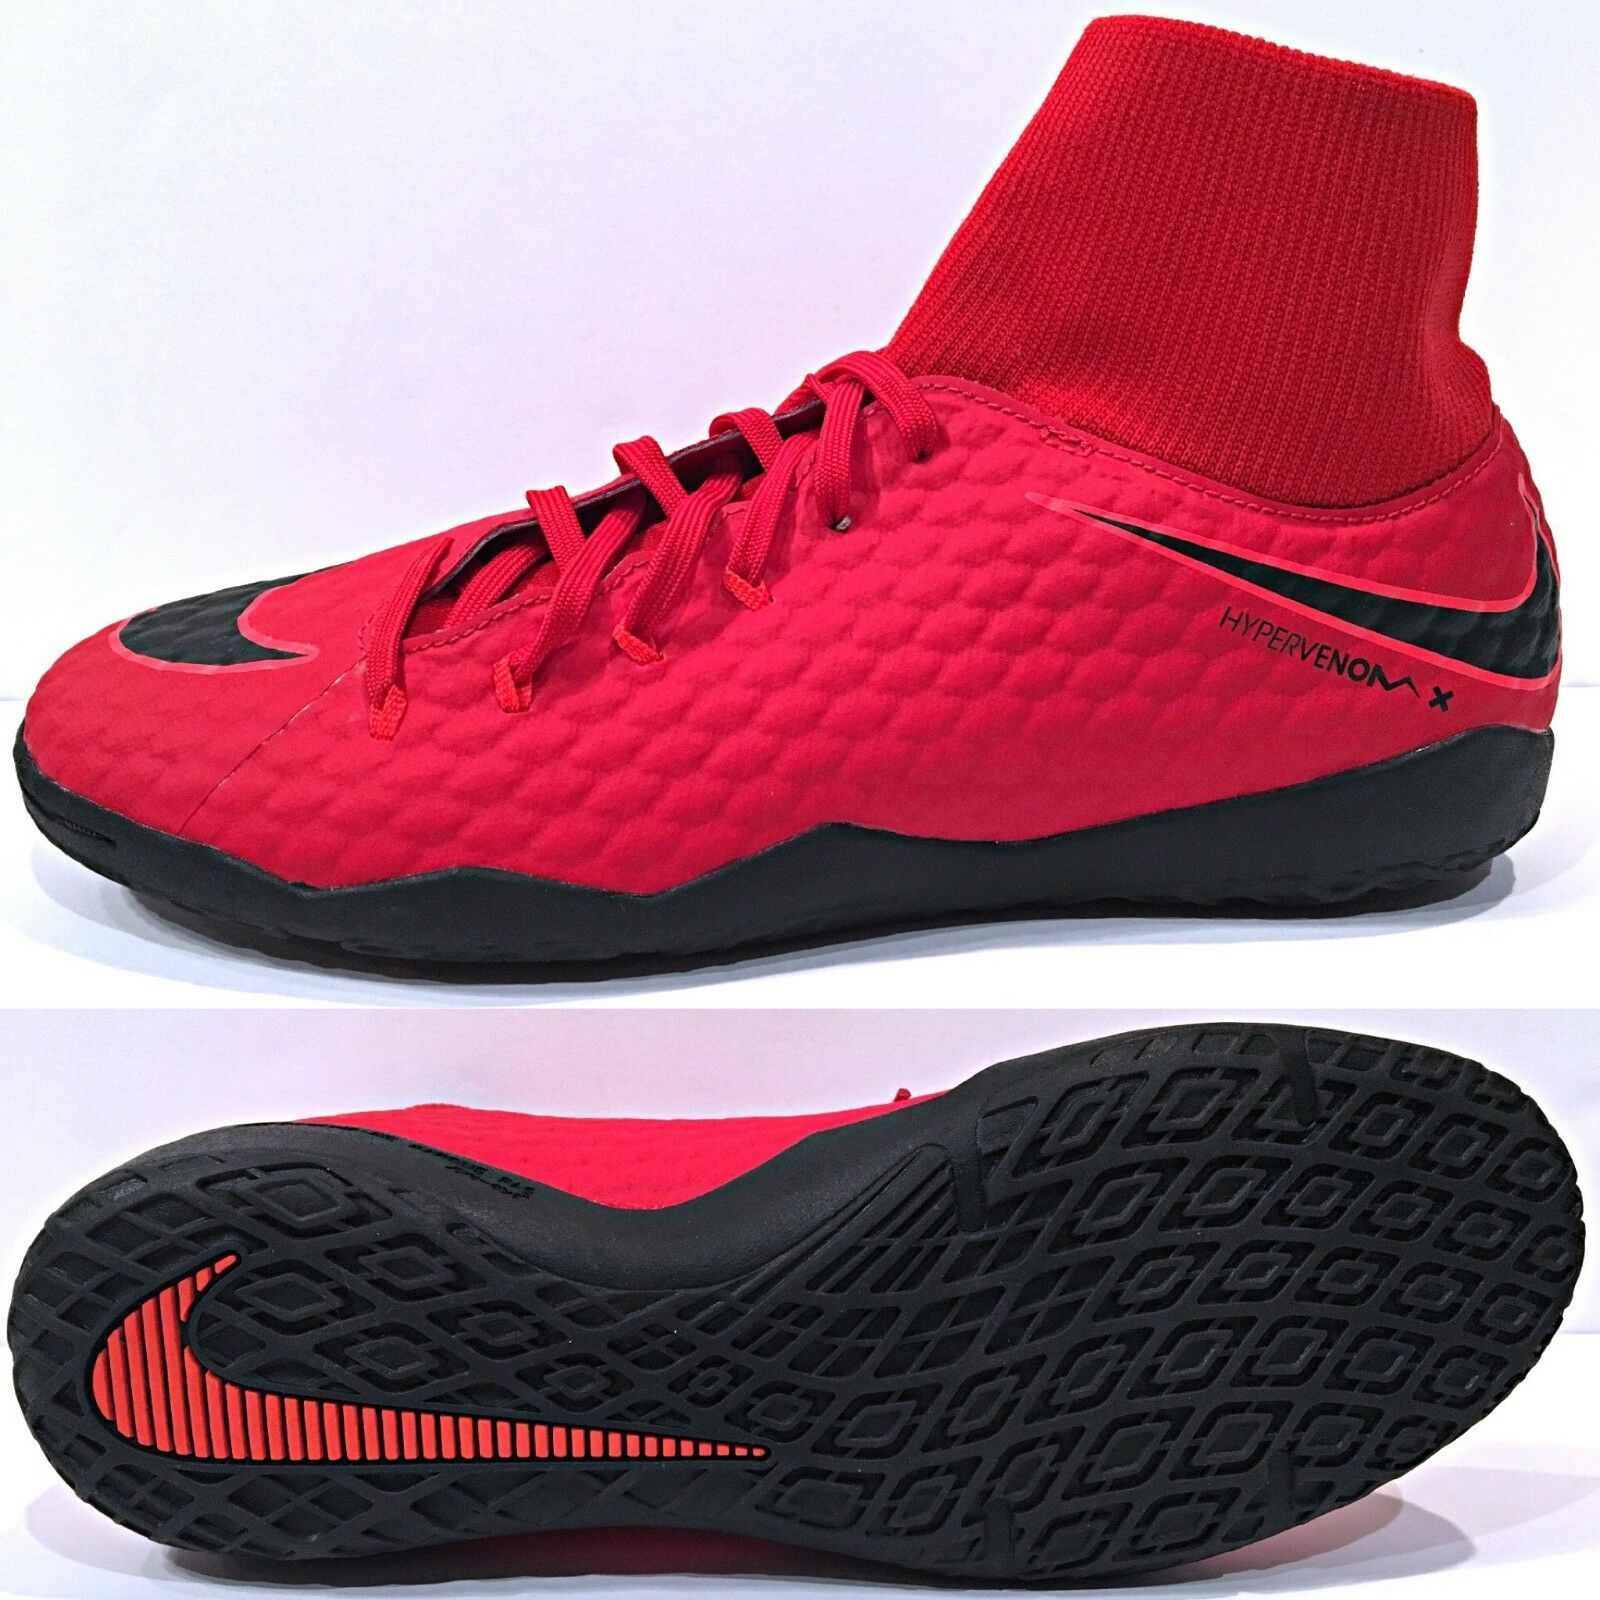 Nike HypervenomX Phelon III 3 DF IC Mens Indoor Soccer Red/Black Price reduction The most popular shoes for men and women